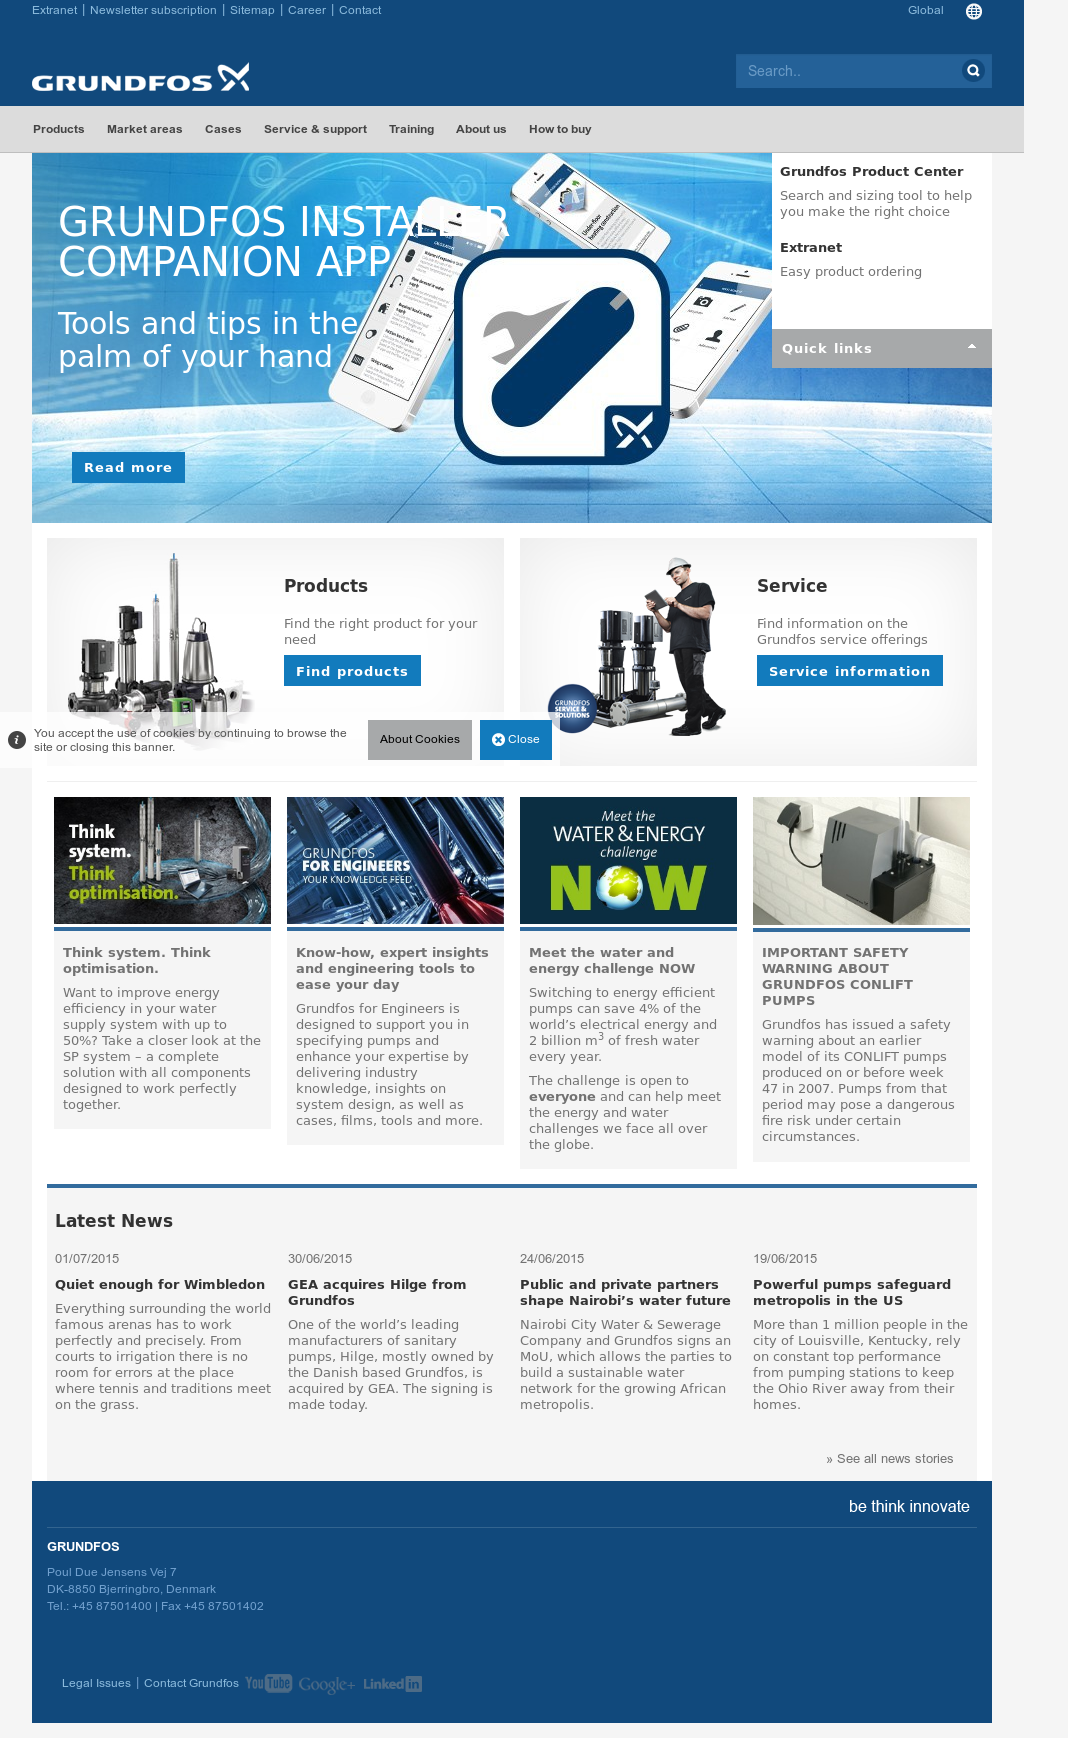 Grundfos Competitors, Revenue and Employees - Owler Company Profile